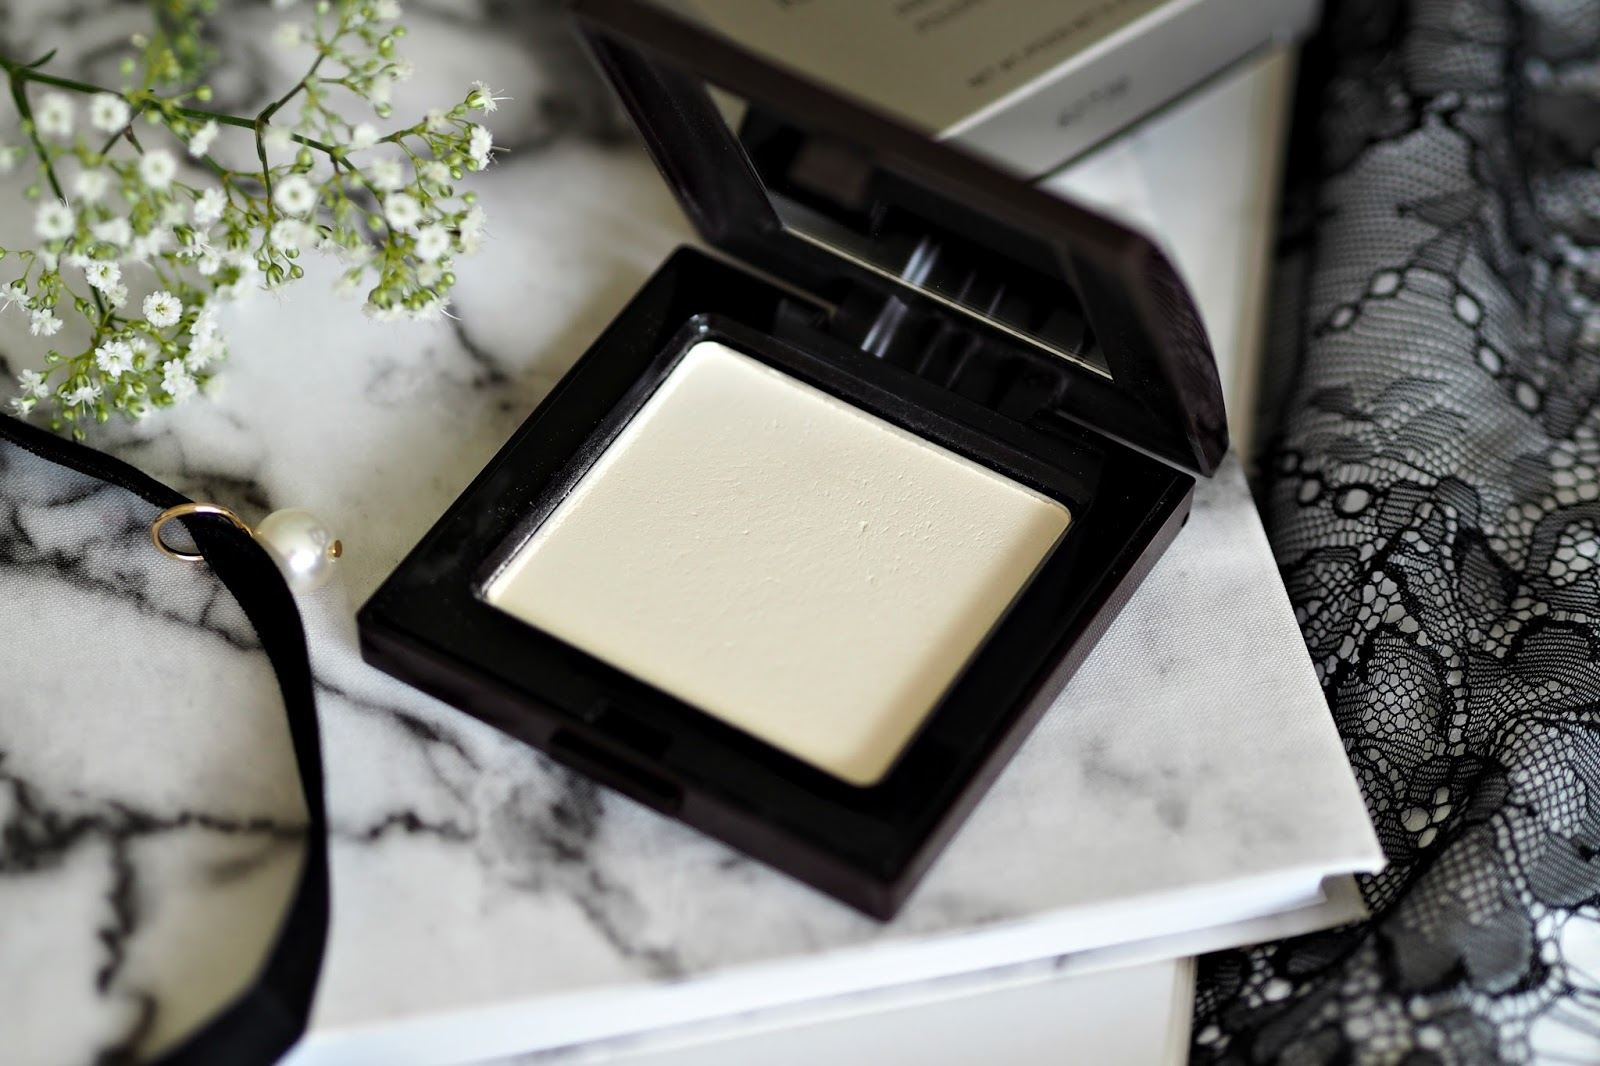 Laura Mercier Translucent Pressed Setting Powder  - does it live up to the hype?